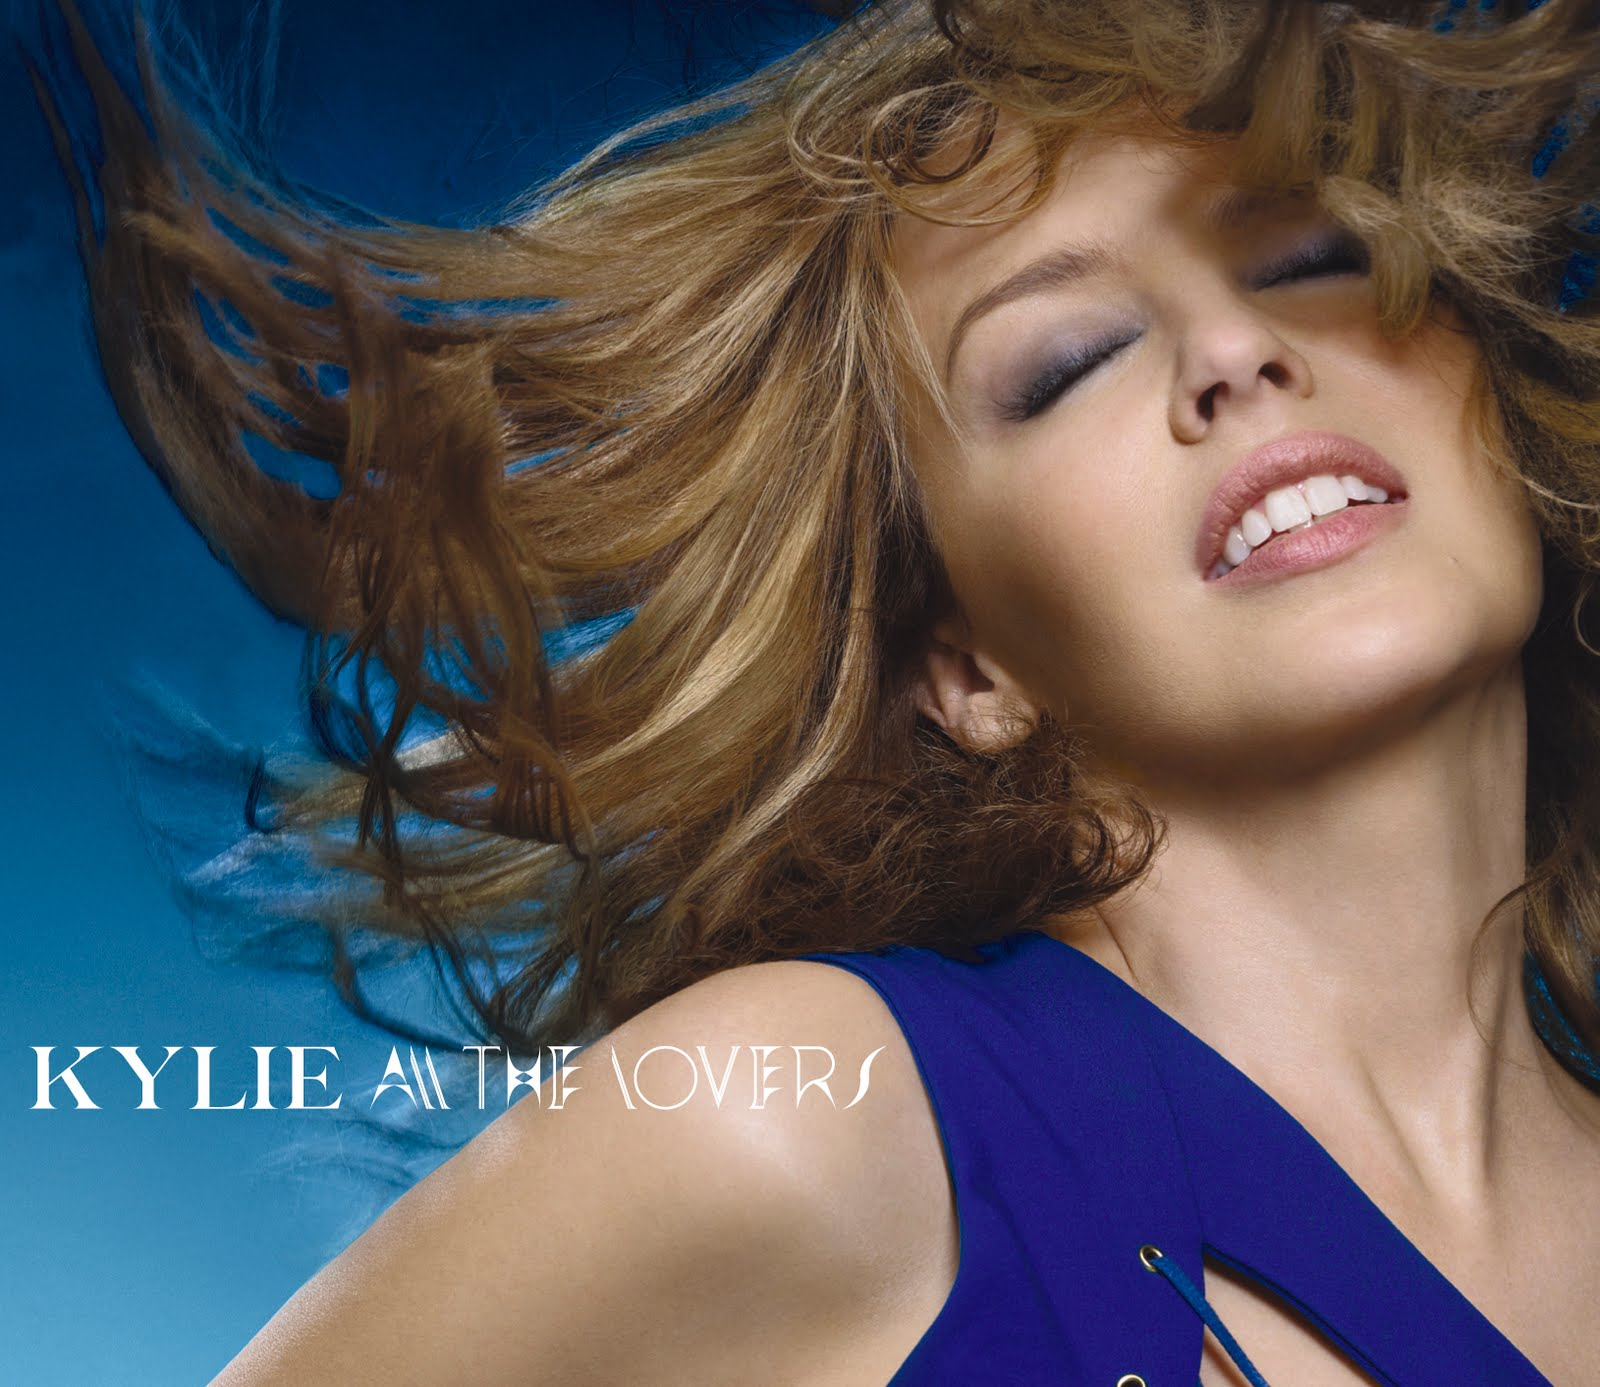 http://2.bp.blogspot.com/_wBa7Q-Vbuuc/TA9o1s5uuOI/AAAAAAAAJZc/VbH8_nnBxPA/s1600/Kylie+Minogue+-+Aphrodite+-+All+The+Lovers+Single+Cover.jpg